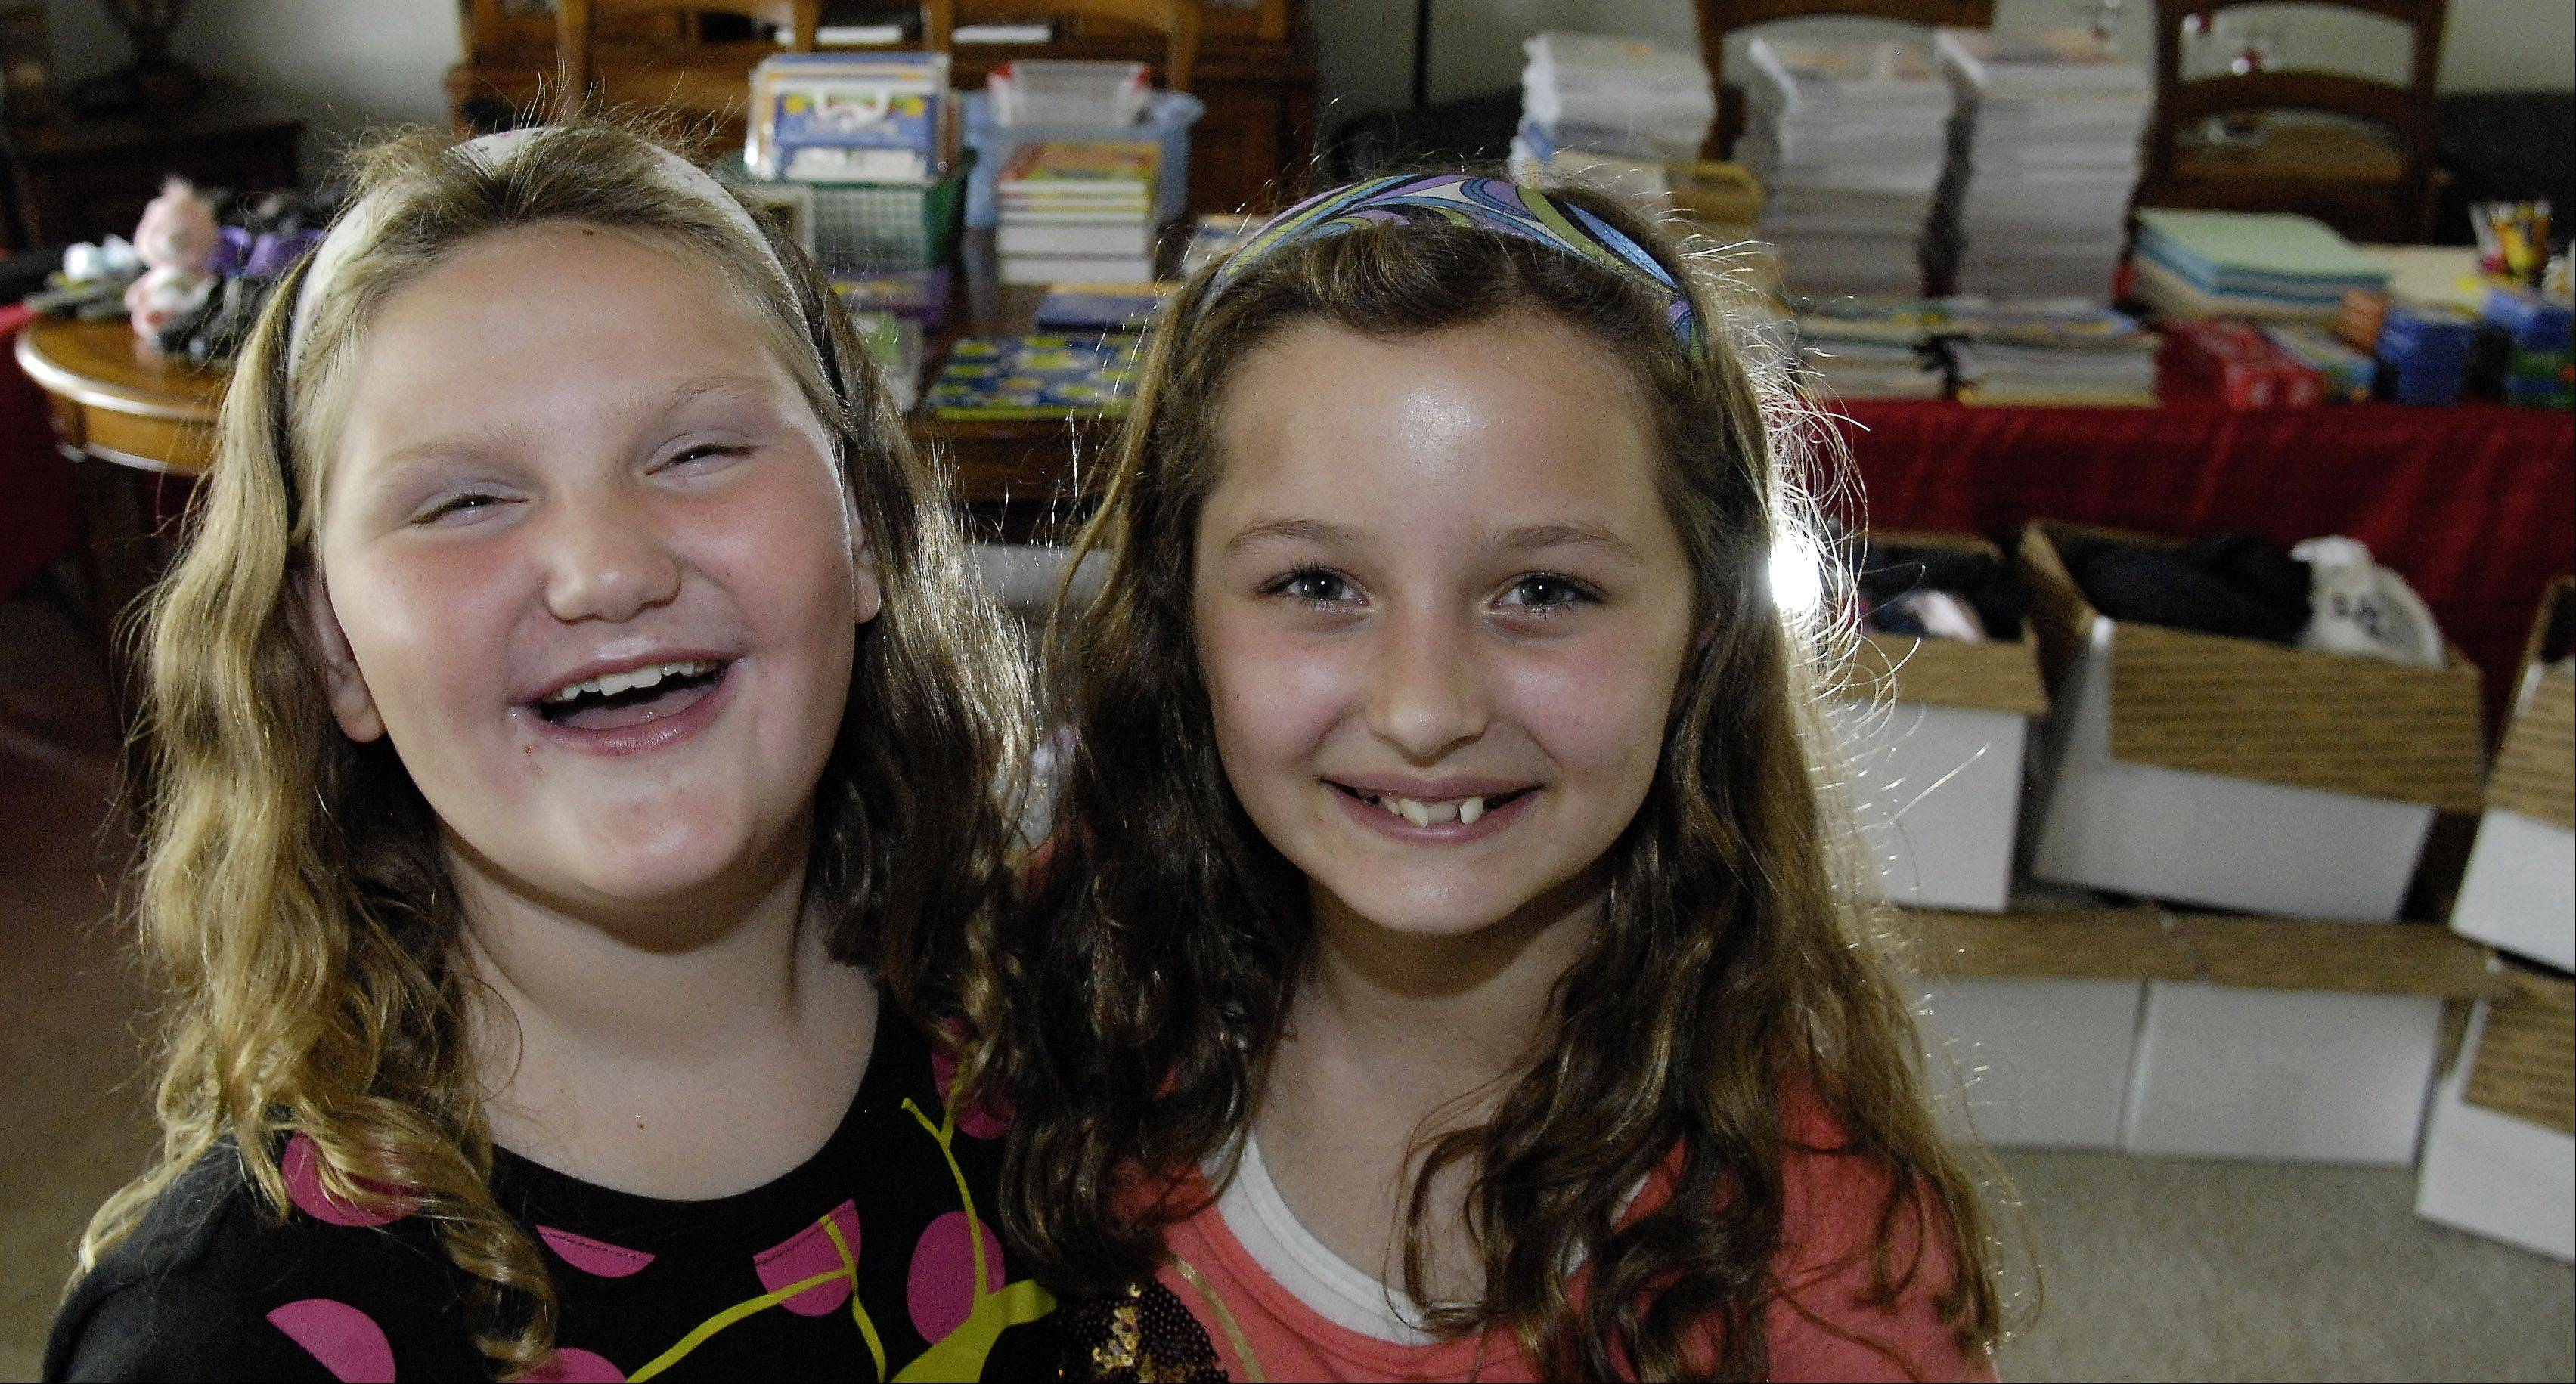 Friends and Blackberry Creek Elementary School students Payton Micka, 8, left, and Kailey Davison, 10, both of Elburn, collected school supplies, clothes and other items to send to tornado victims in Oklahoma.